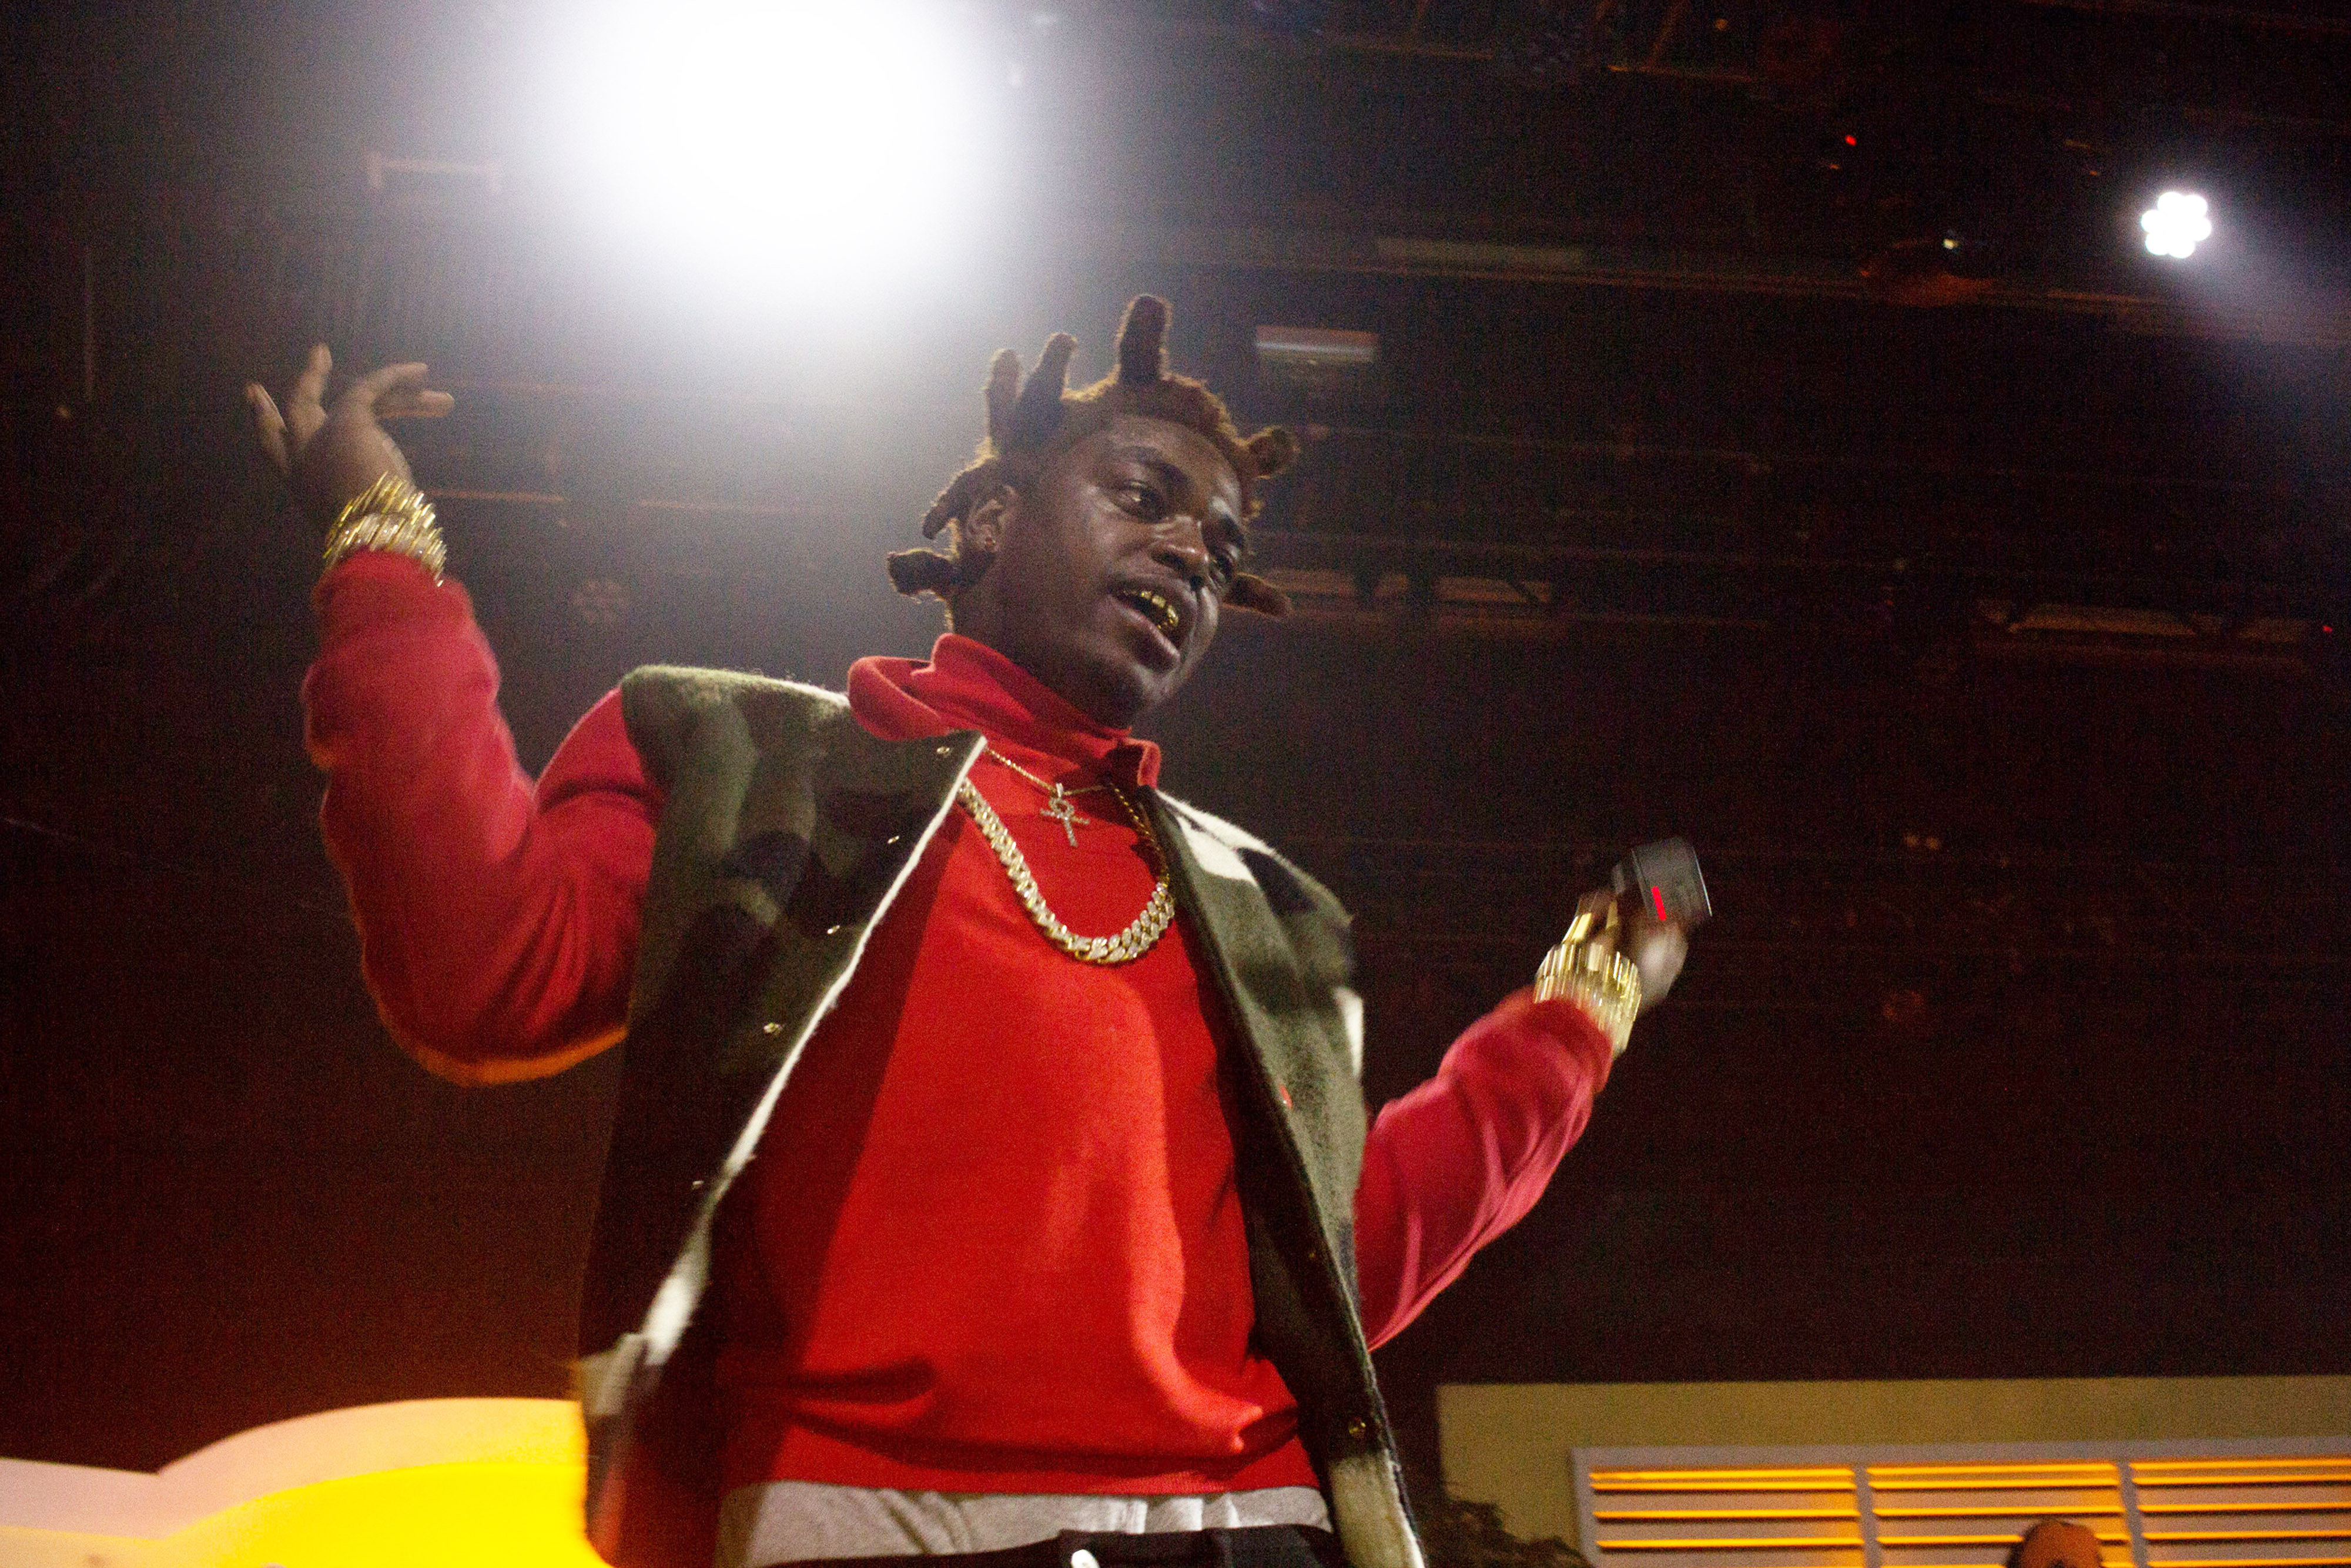 Kodak Black In Concert - New York, NY